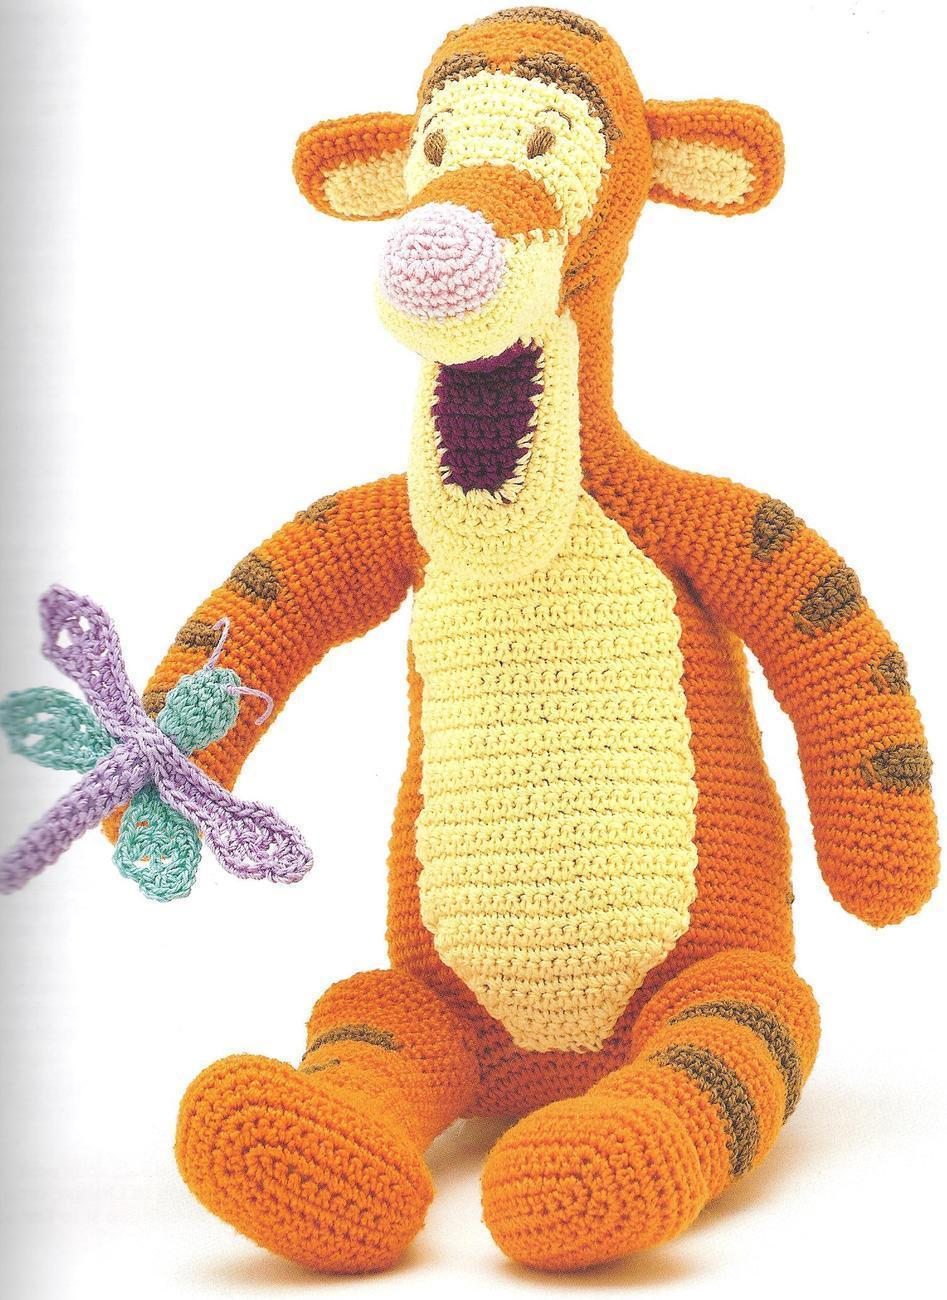 Crochet Patterns On Amazon : RARE~Disney~Pooh & Little Buddies Thread Crochet Patterns